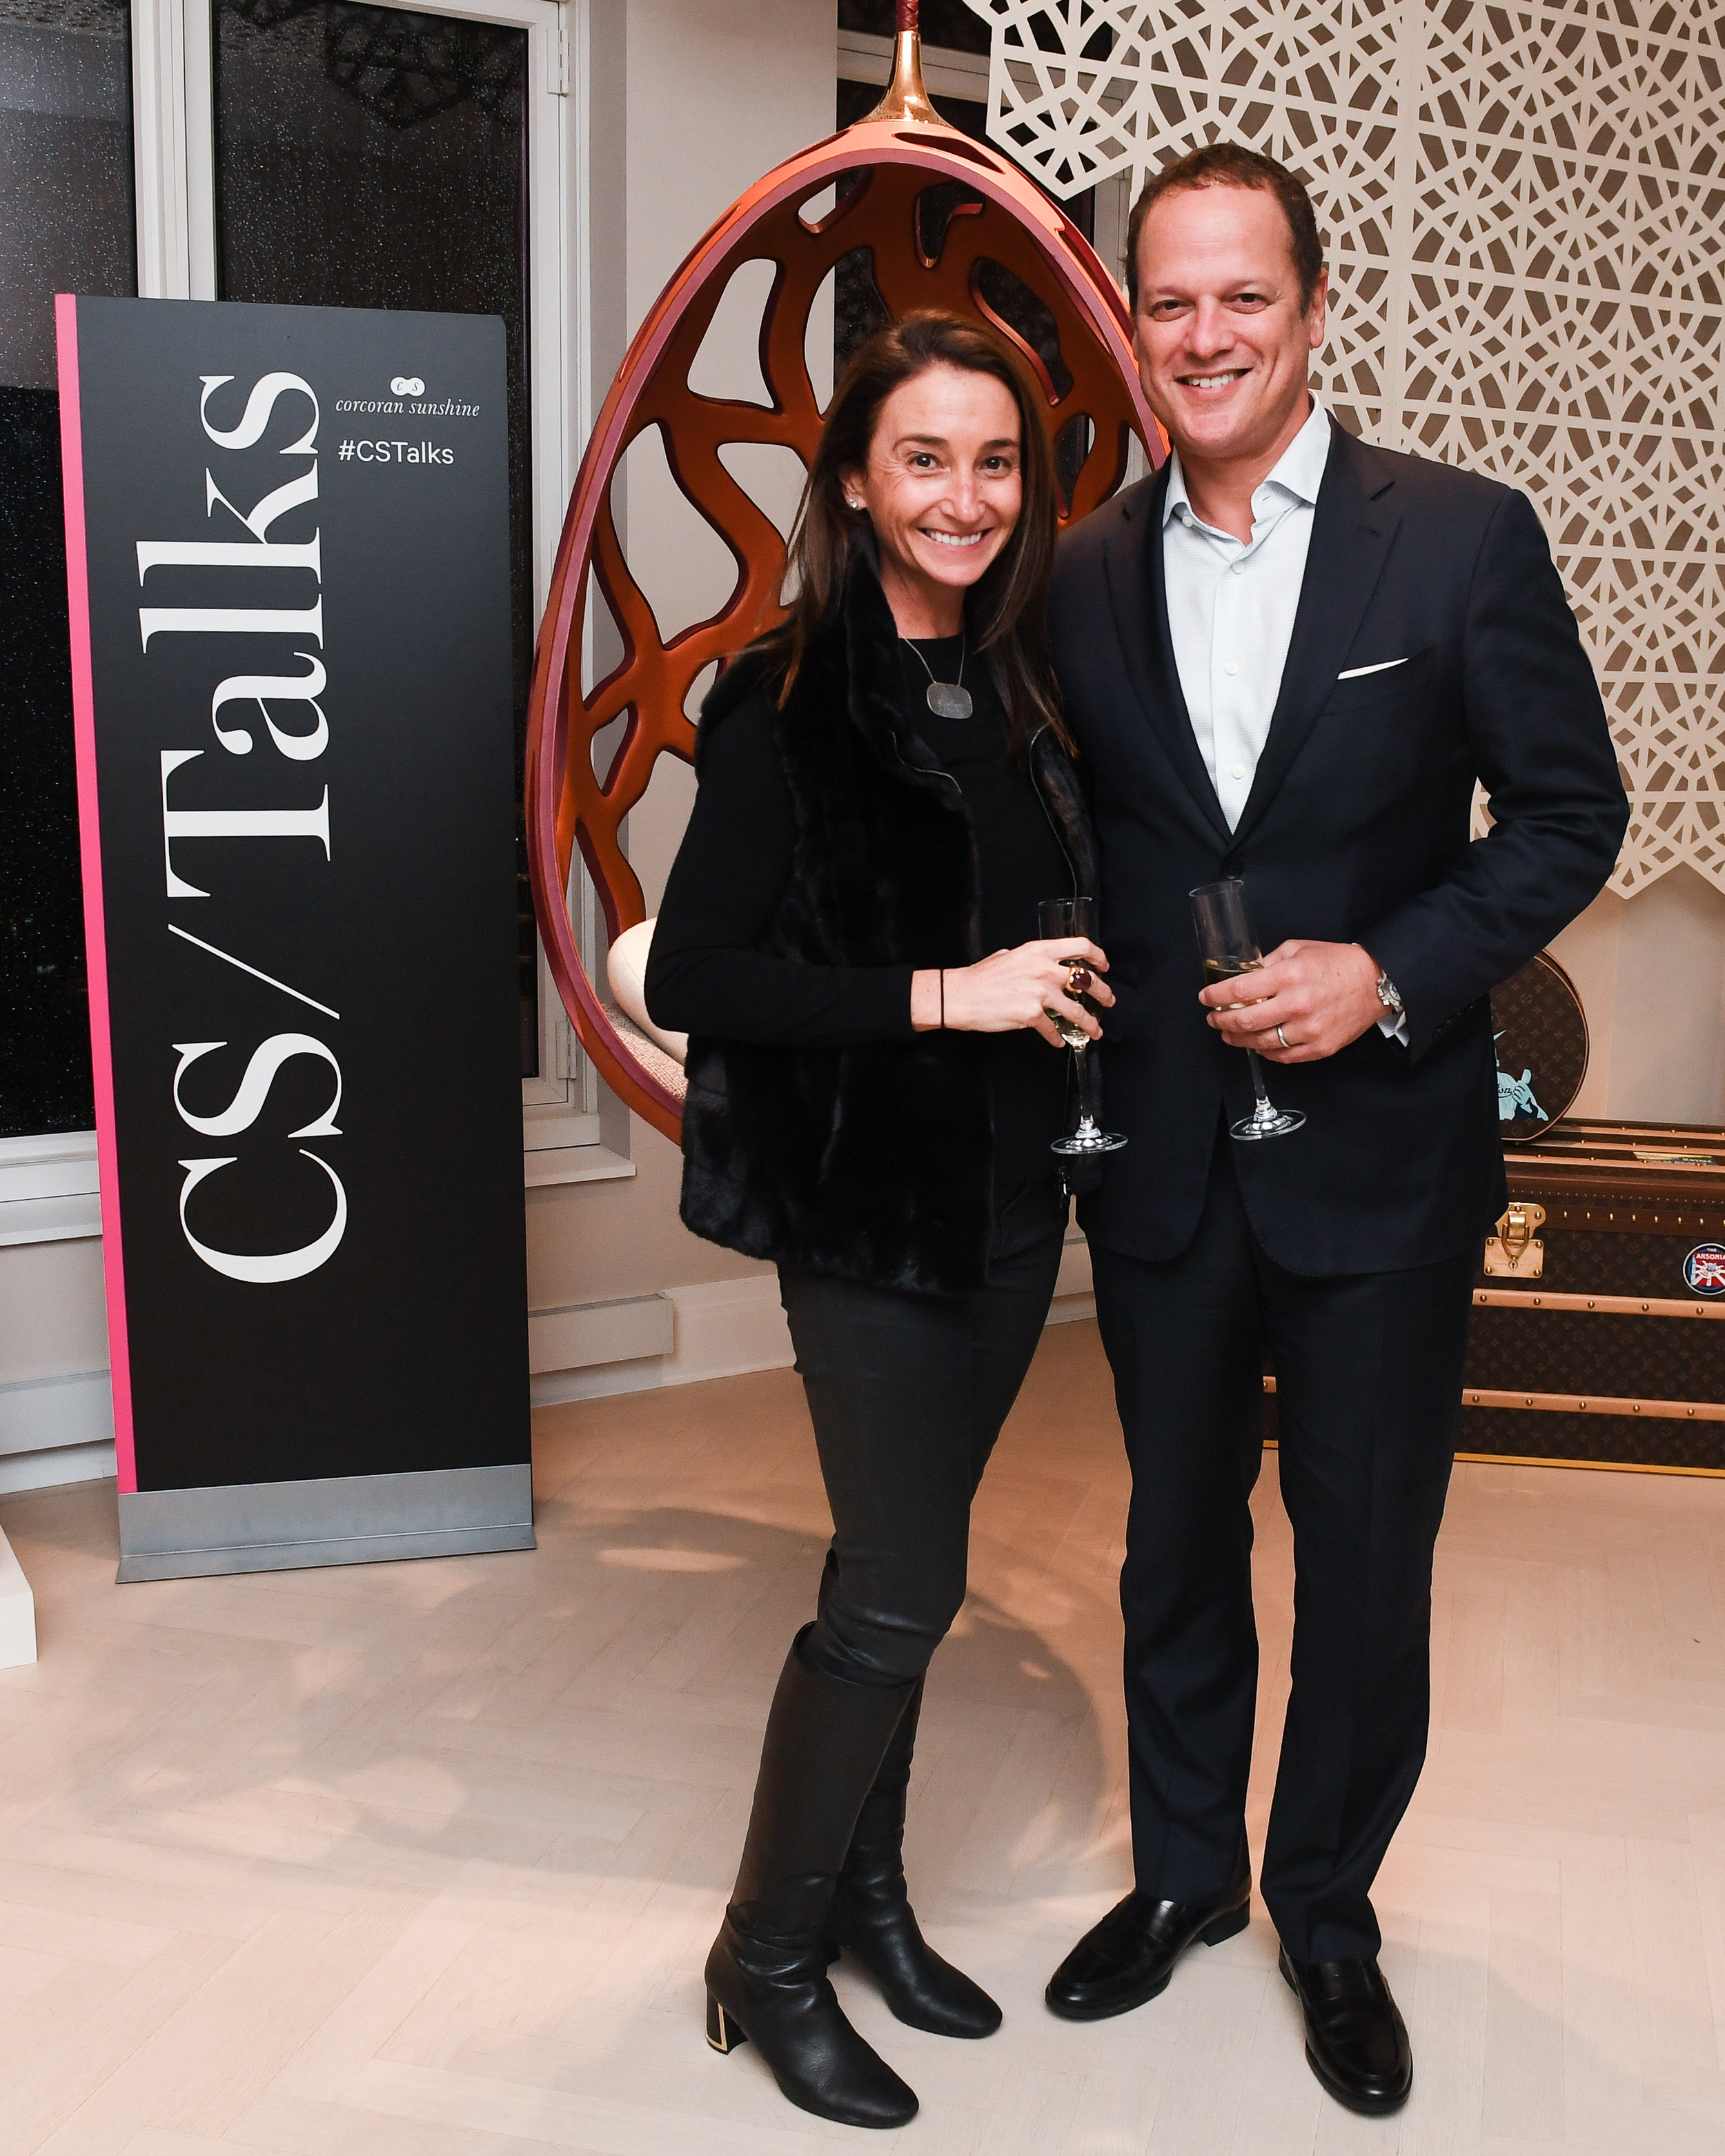 Kelly Kennedy Mack, President of Corcoran Sunshine, and Rob Vecsler, Silverstein Properties President of Residential Development, at the Louis Vuitton partnership at 30 Park Place Four Seasons Private Residences